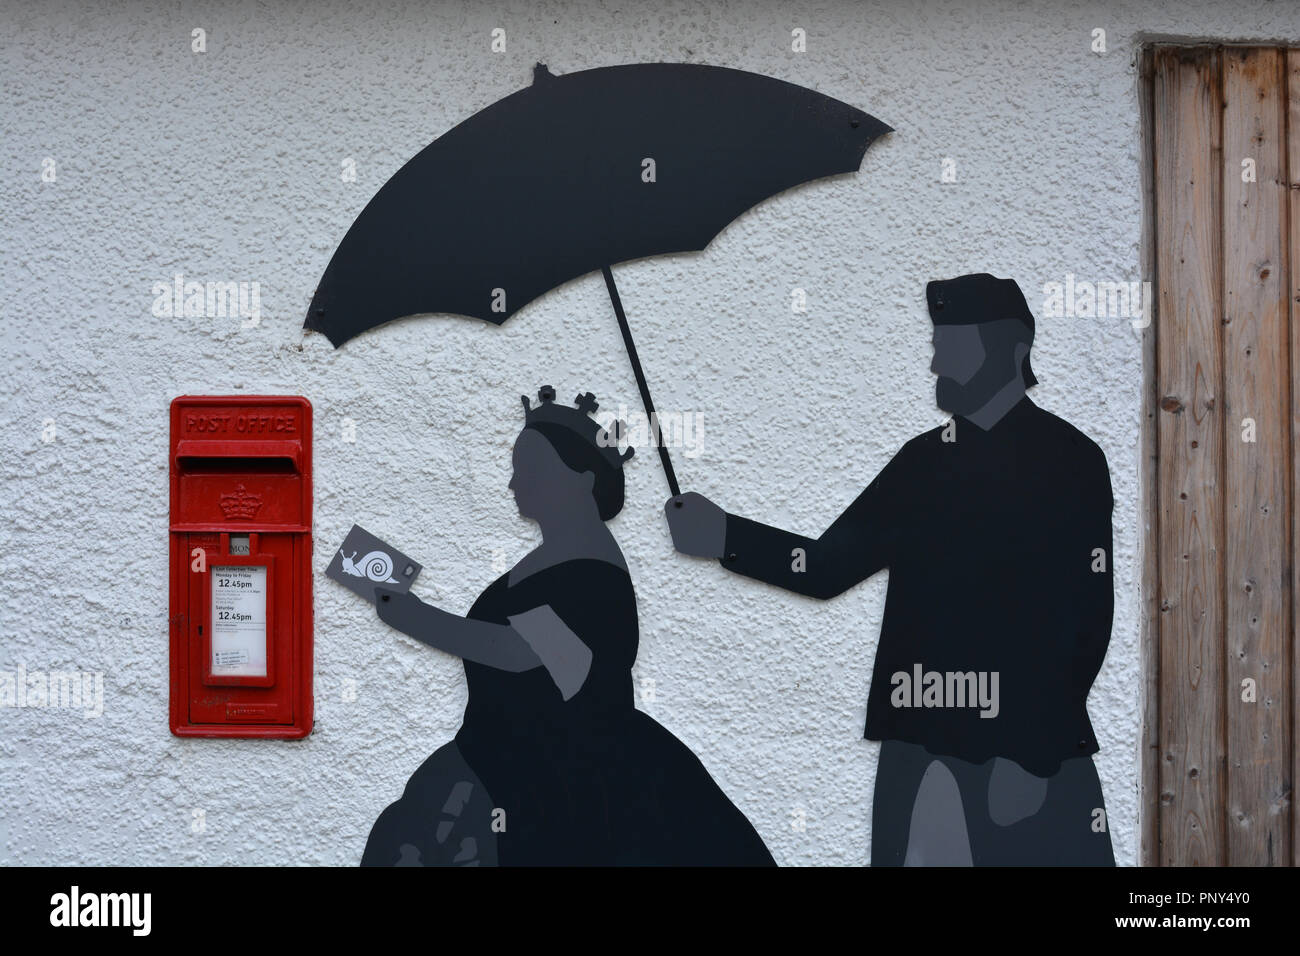 Royal Mail postbox and depiction of snail mail and the Queen and companion, The Visitor Centre and Cafe at Queen's View, Pitlochry, Scotland - Stock Image